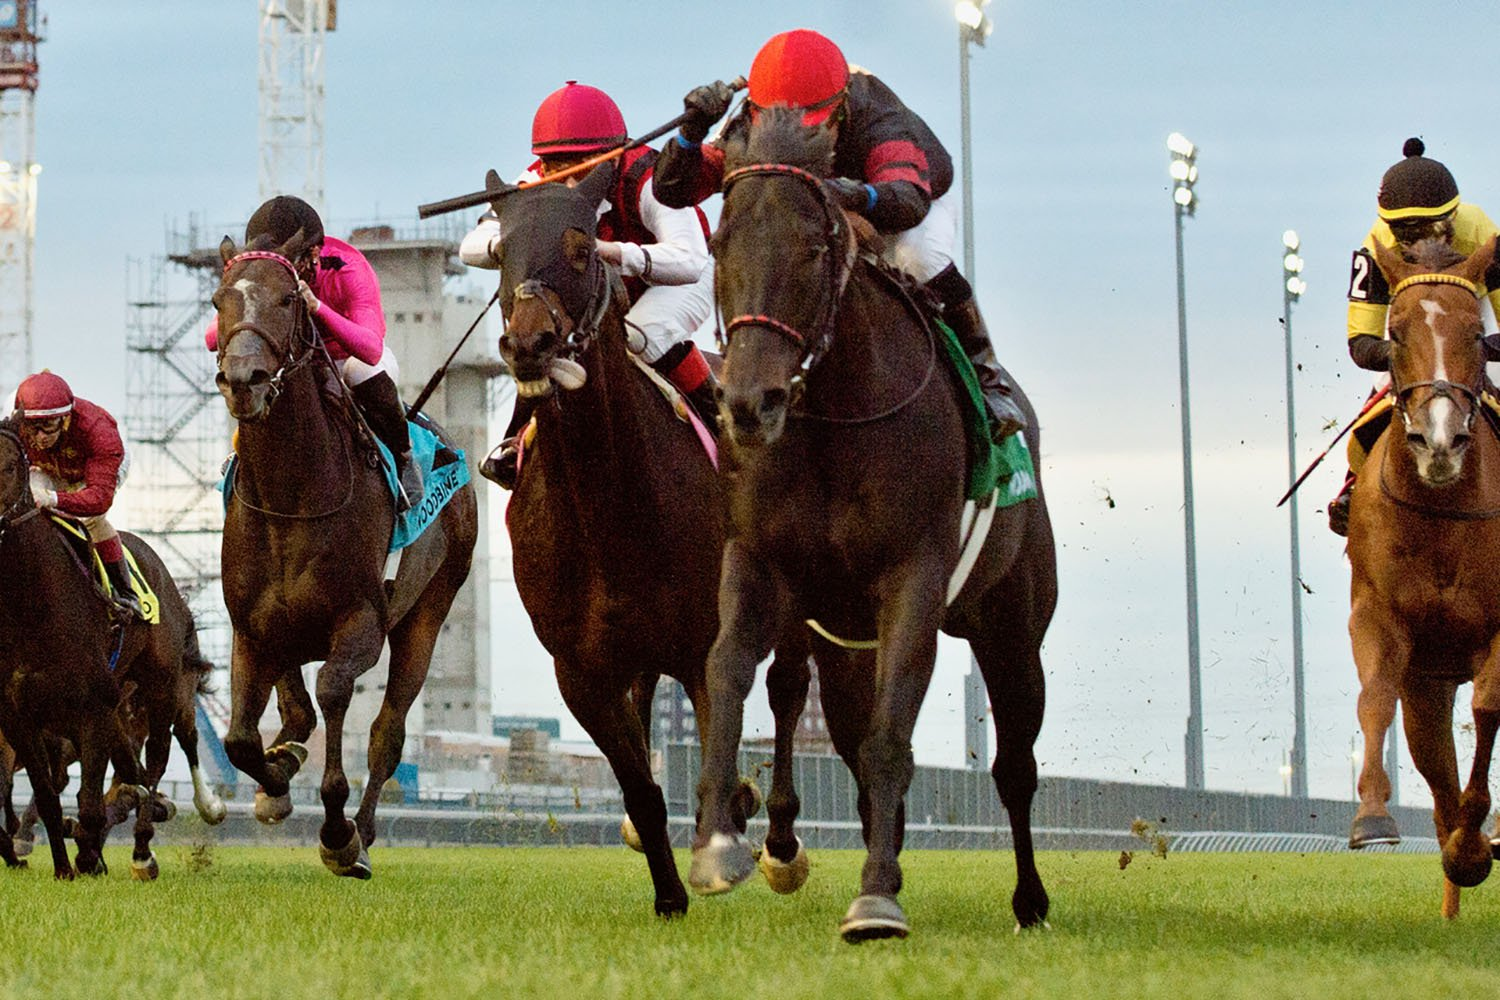 Silent Poet and jockey Justin Stein winning the $250,000 Nearctic Stakes (Grade 2) on Sunday, Oct. 18 at Woodbine Racetrack. (Michael Burns Photo)